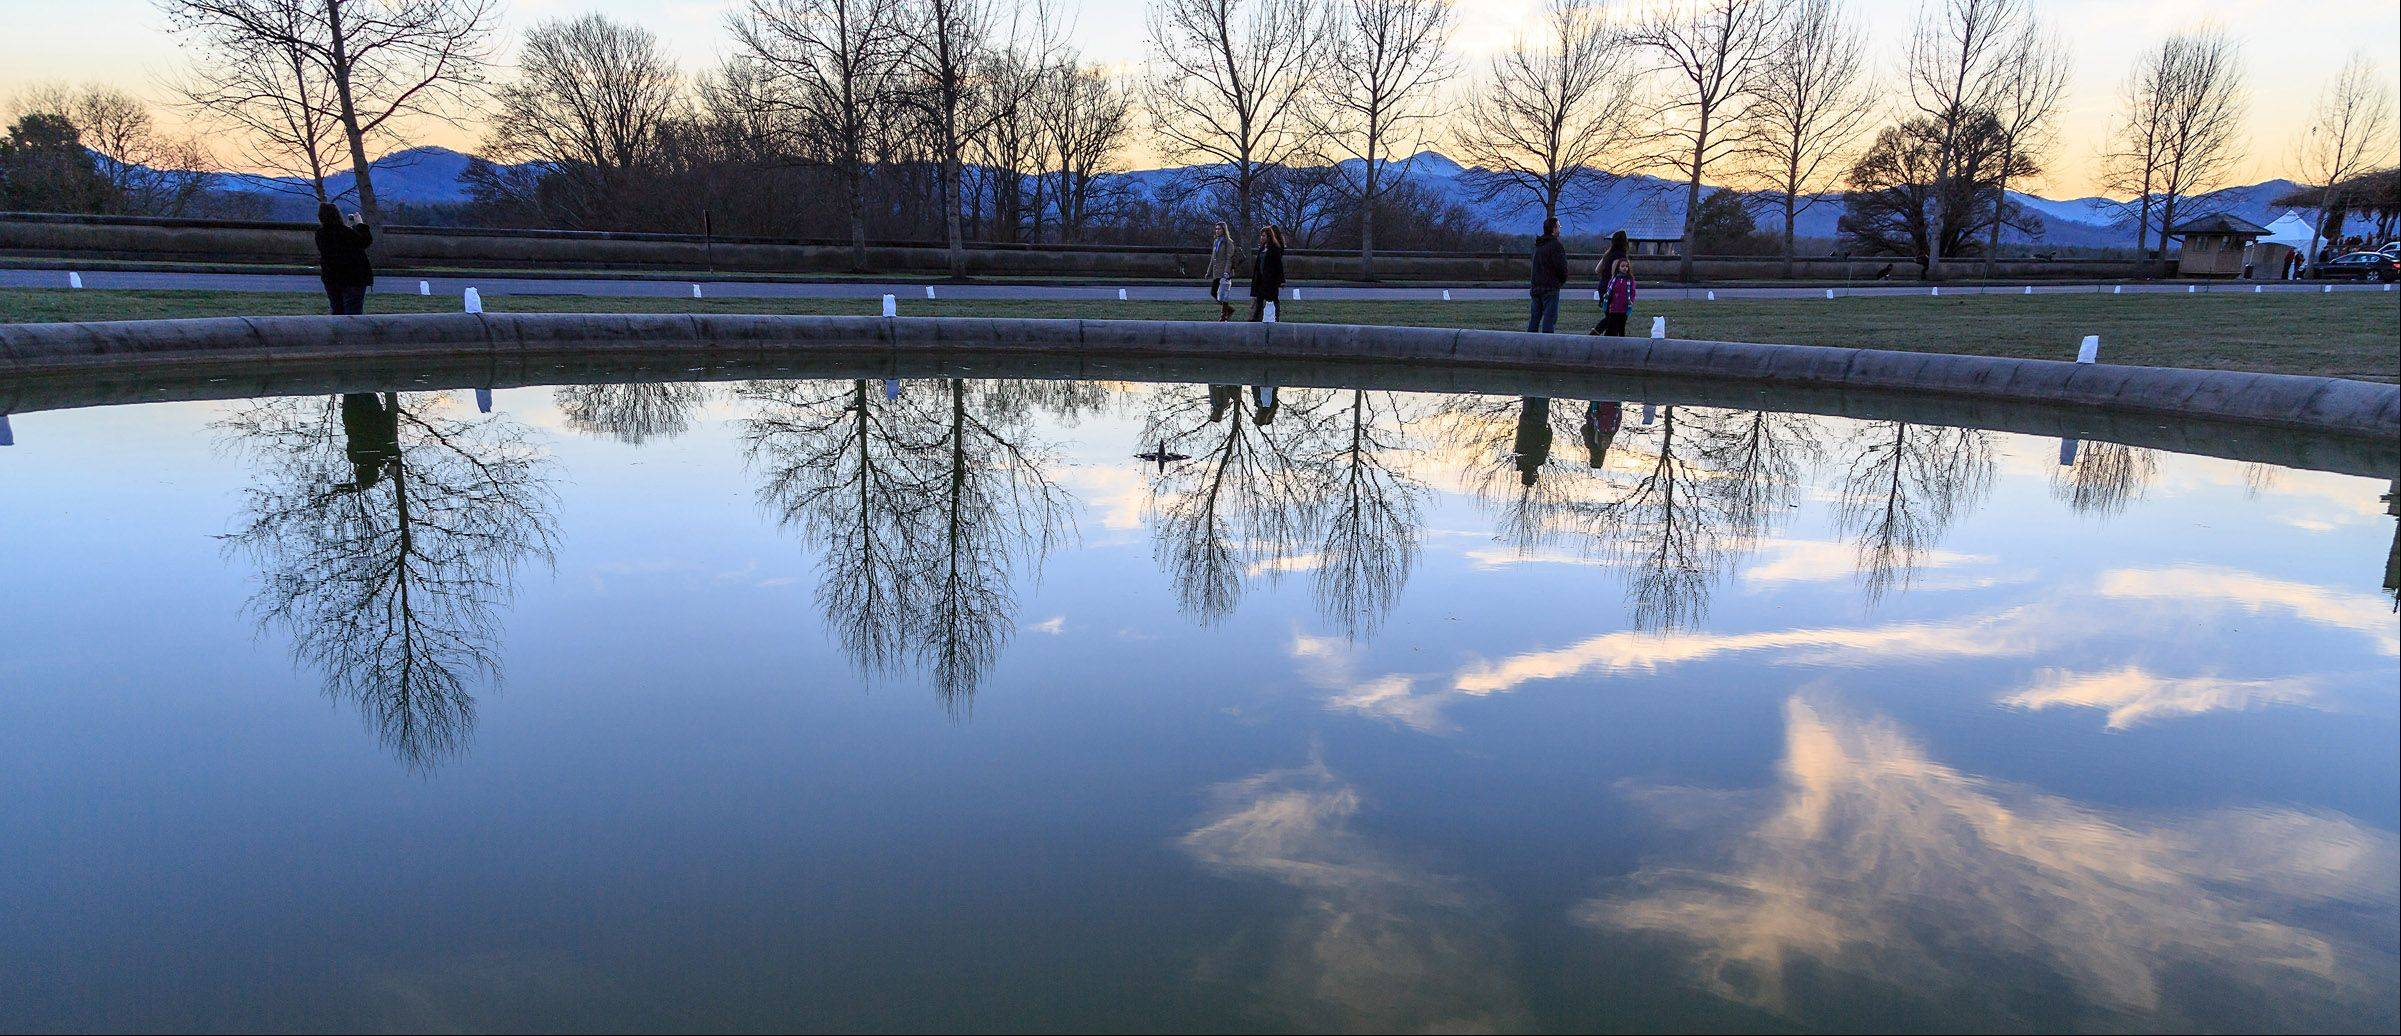 Trees are reflected in the water under a dusk sky in the large pond in front of the Biltmore House at Biltmore Estates in Asheville, NC on November 29. The Blue Ridge Mountains are in the background.